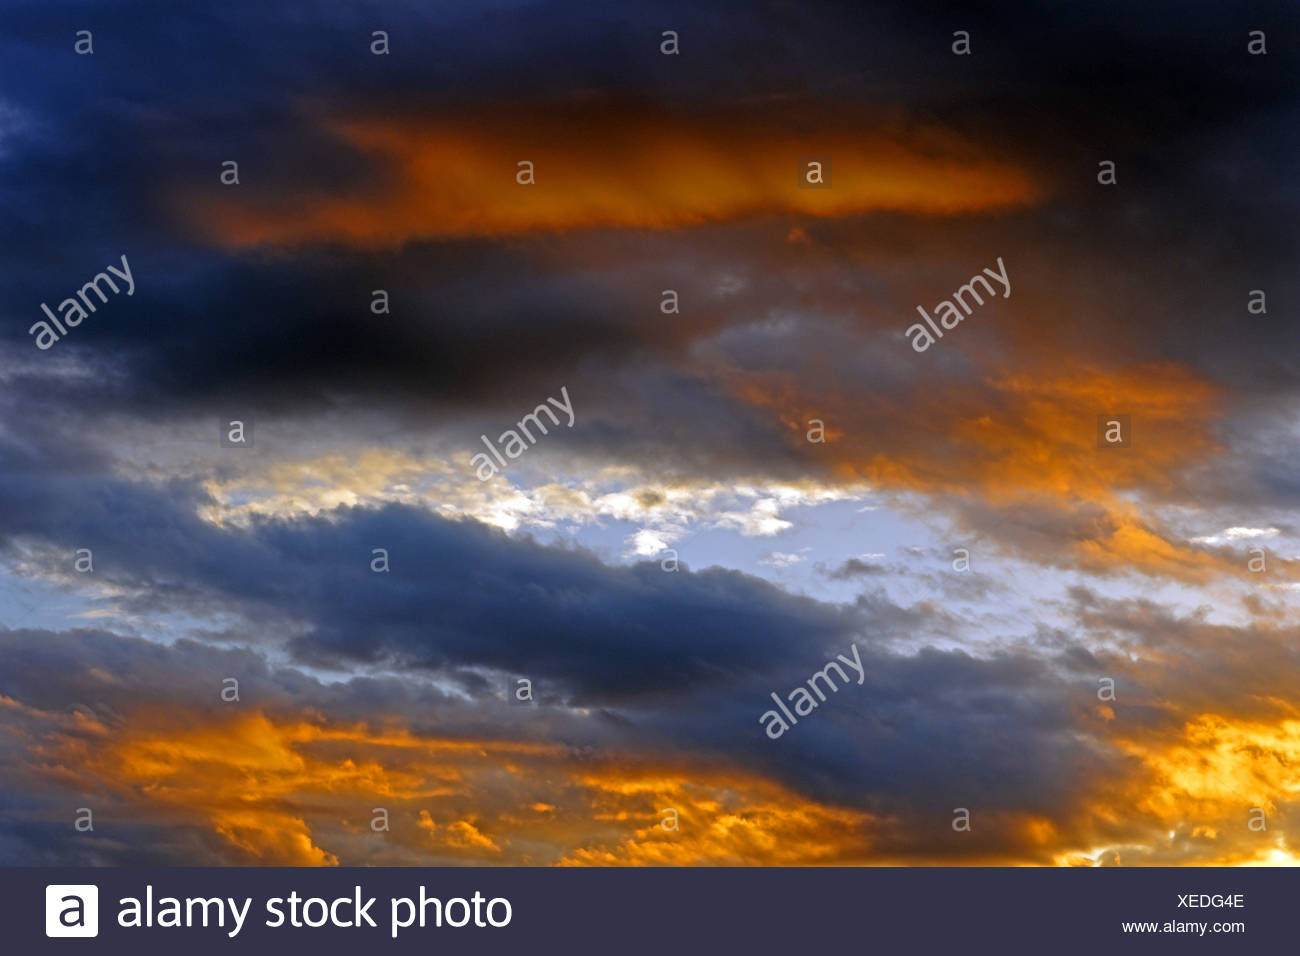 Europe, France, FR, Auvergne, Vichy, evening sky, sky, mood, clouds, - Stock Image